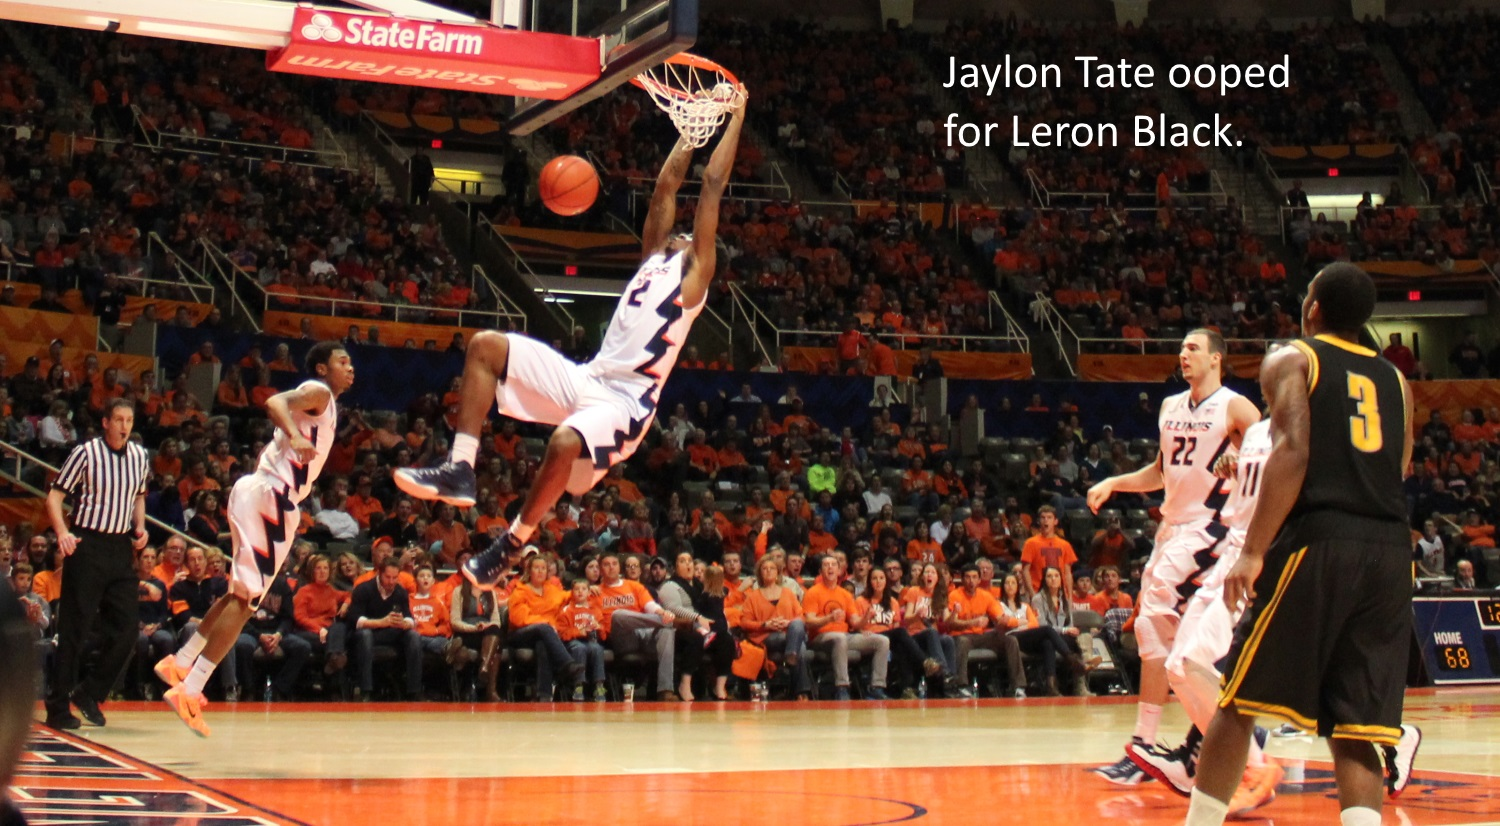 Jaylon TAte ooped Leron Black